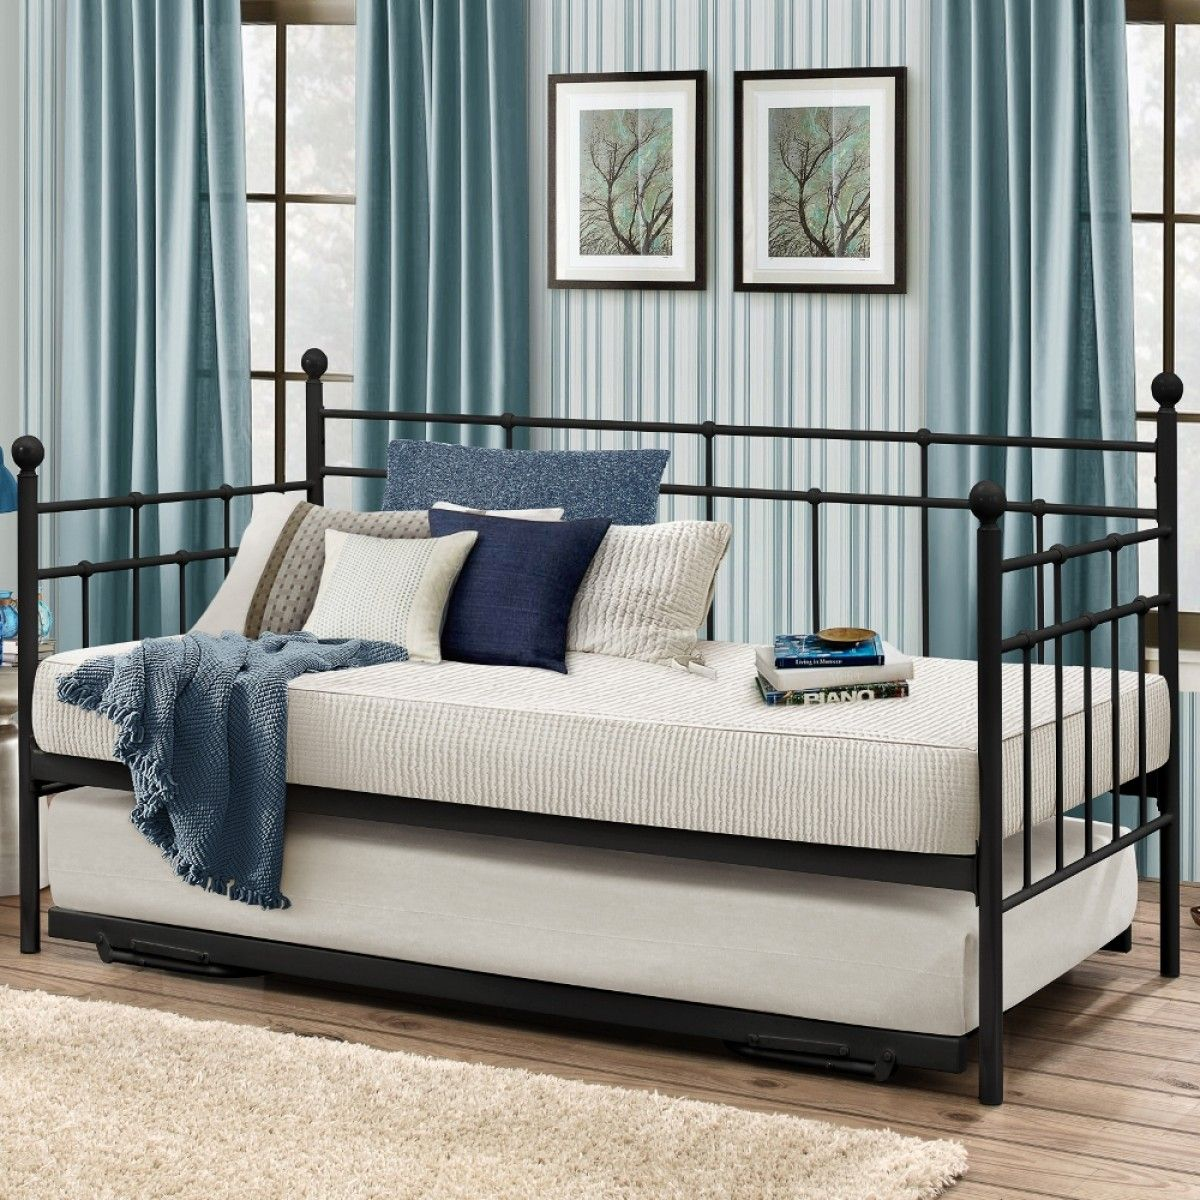 Best Lyon Black Metal Guest Bed With Trundle Luxury Bed 400 x 300